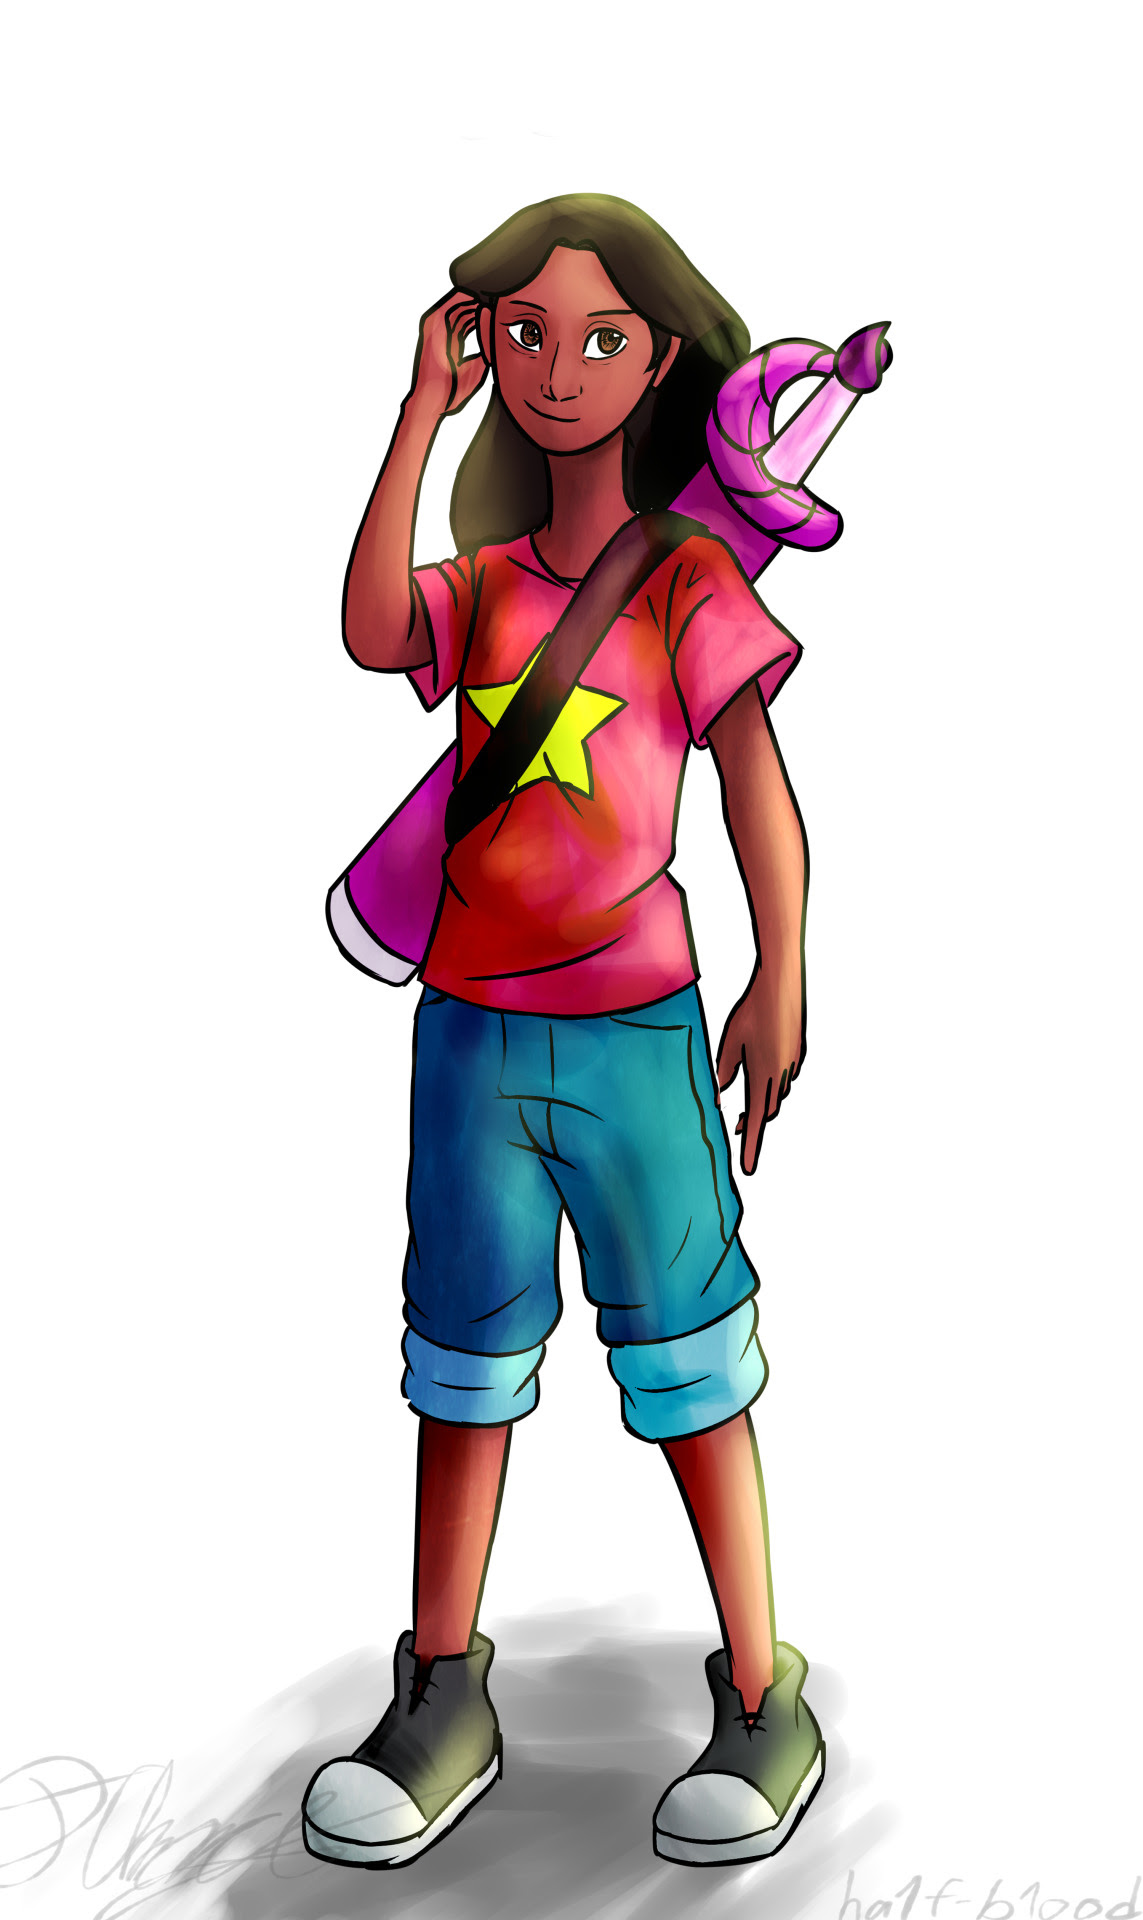 Connie wearing Steven's shirt is one of my favourite things now. This was a quick thing, I know it'd be baggier, but oh well XP